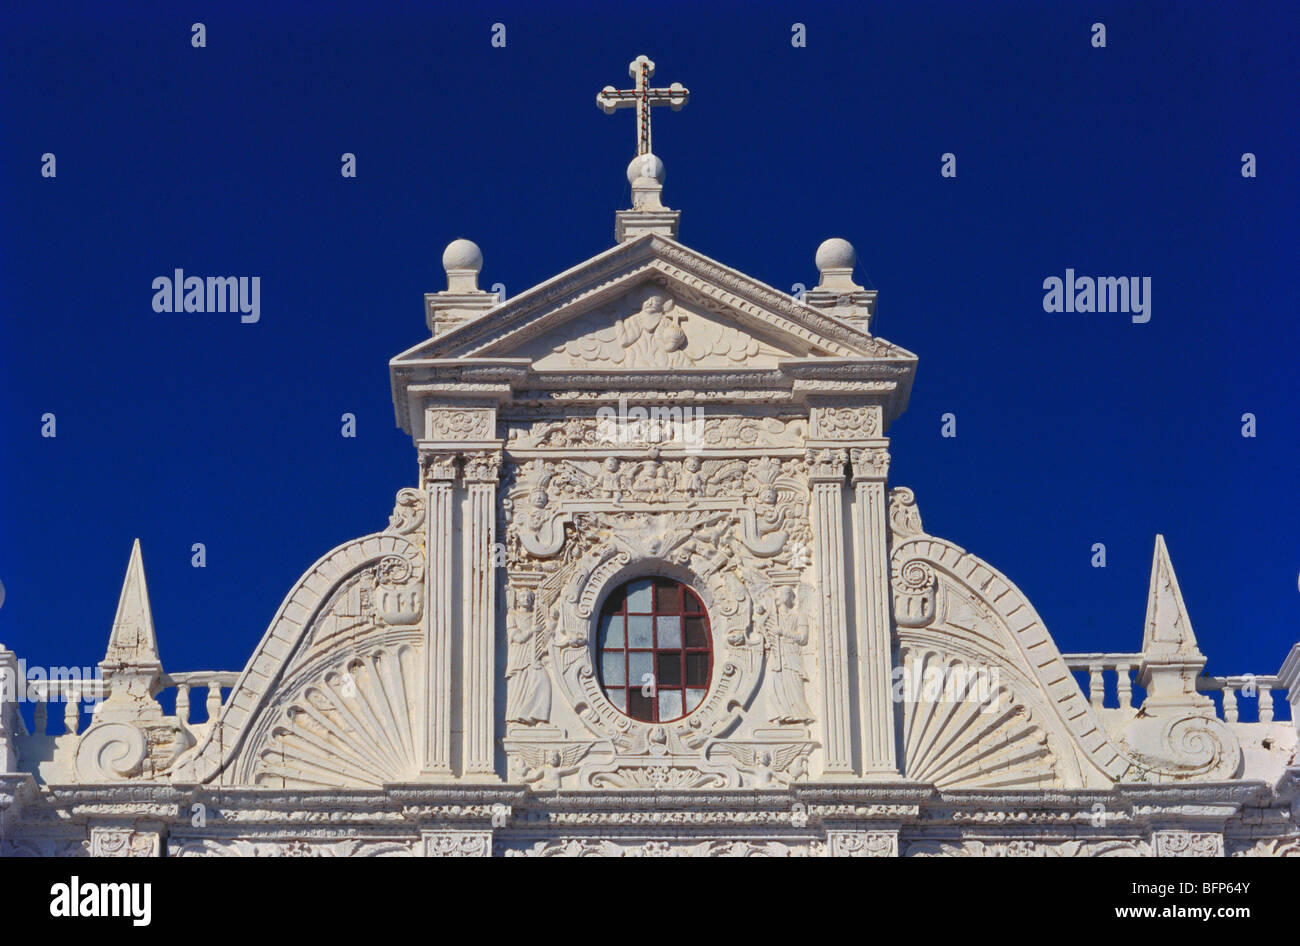 AAD 66268 : St Paul cathedral in 1691 ; Diu UT ; India - Stock Image